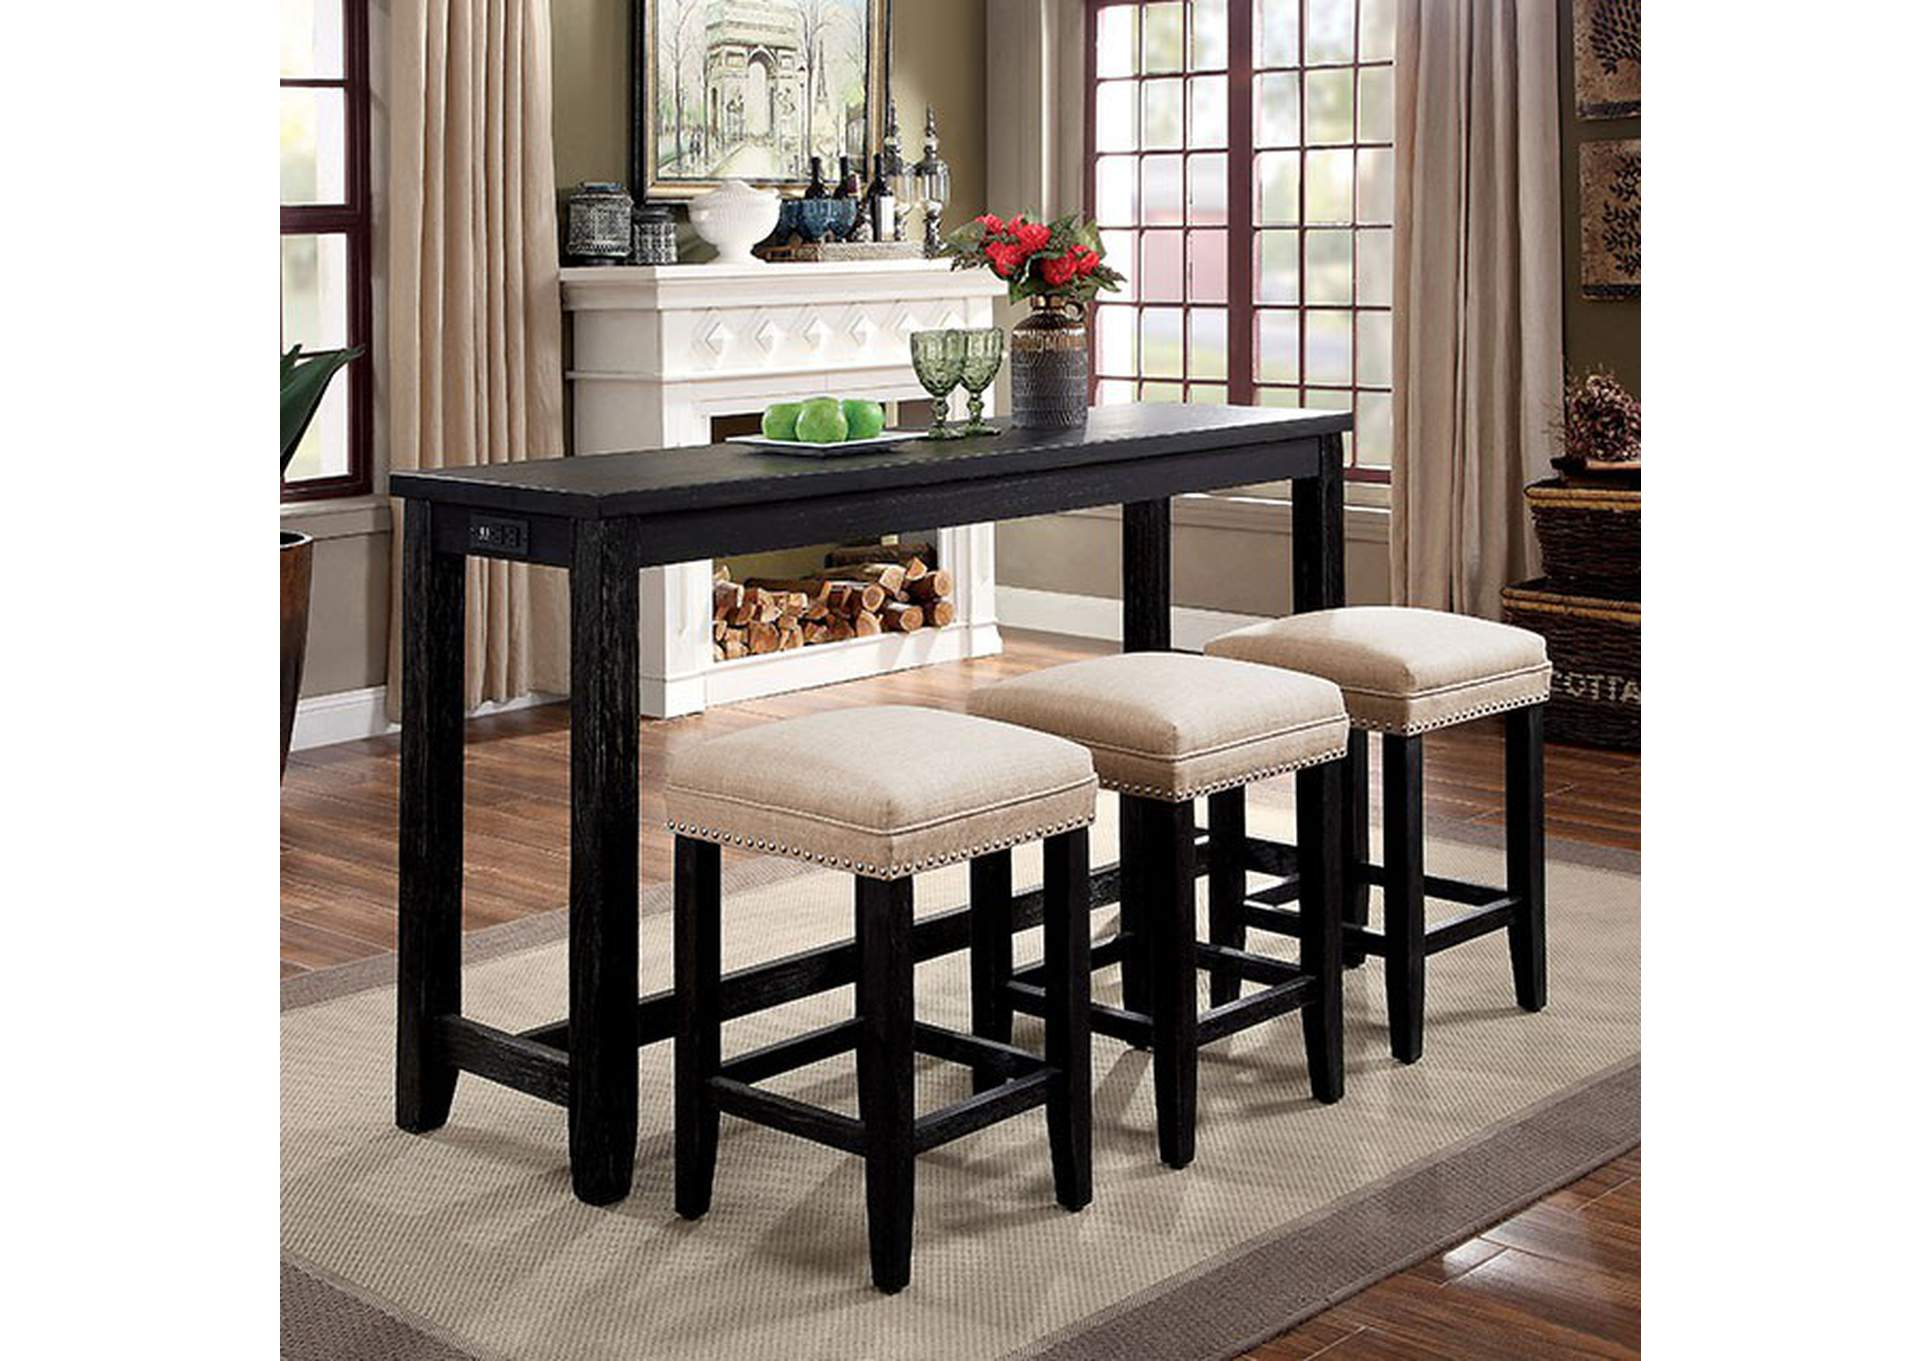 Caerleon 4 Piece Counter Height Dining Set,Furniture of America